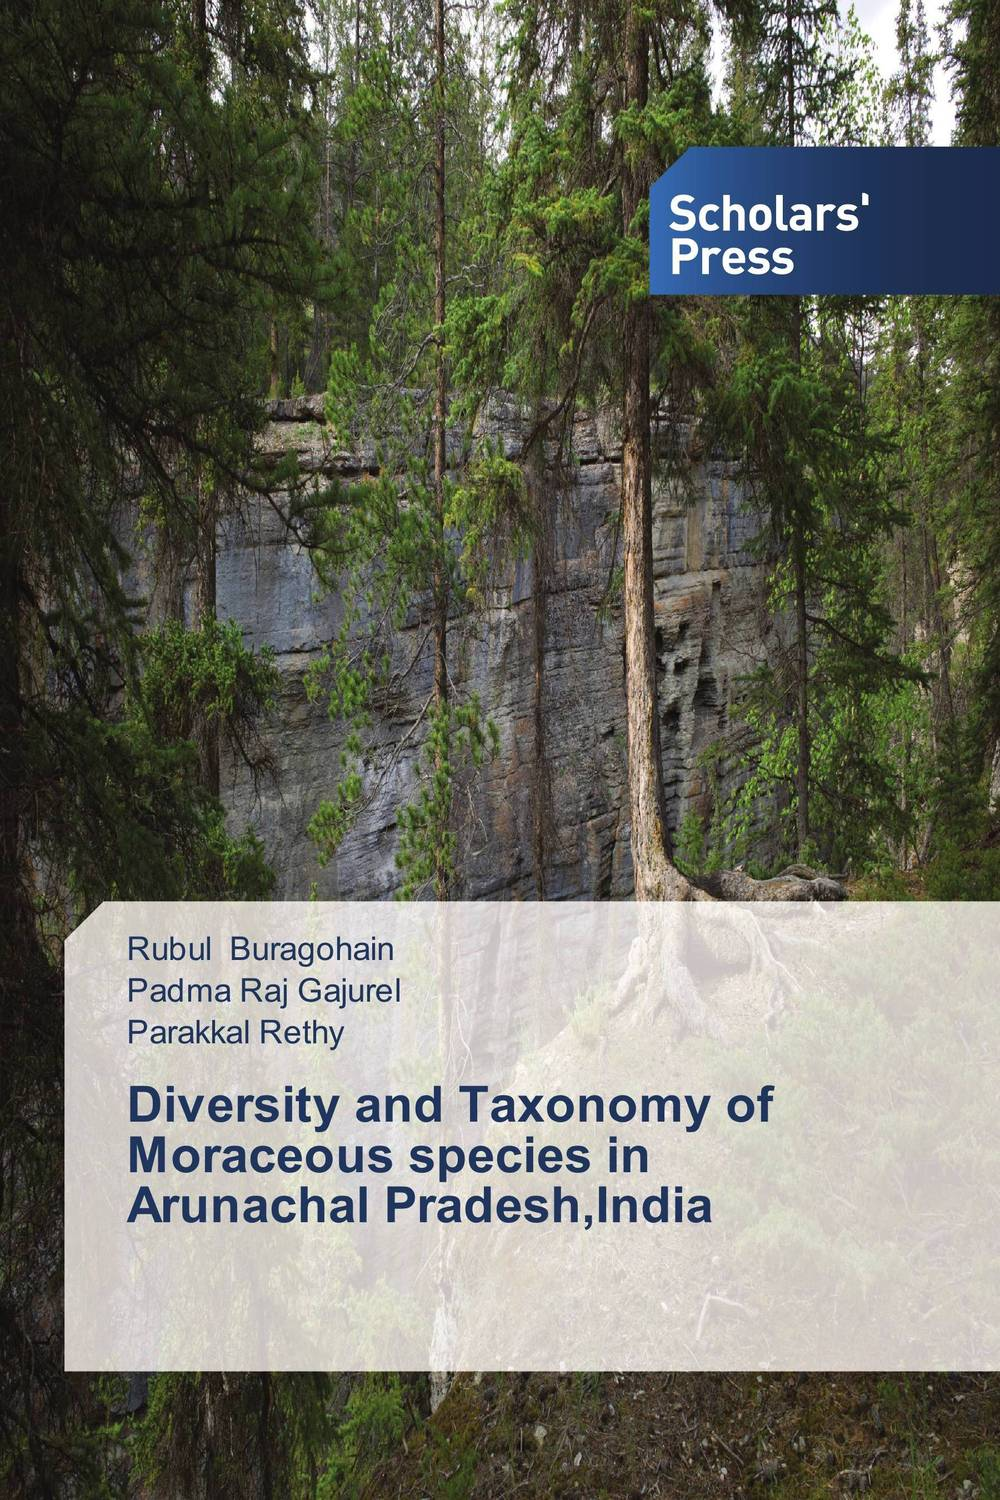 Diversity and Taxonomy of Moraceous species in Arunachal Pradesh,India planning the family in india